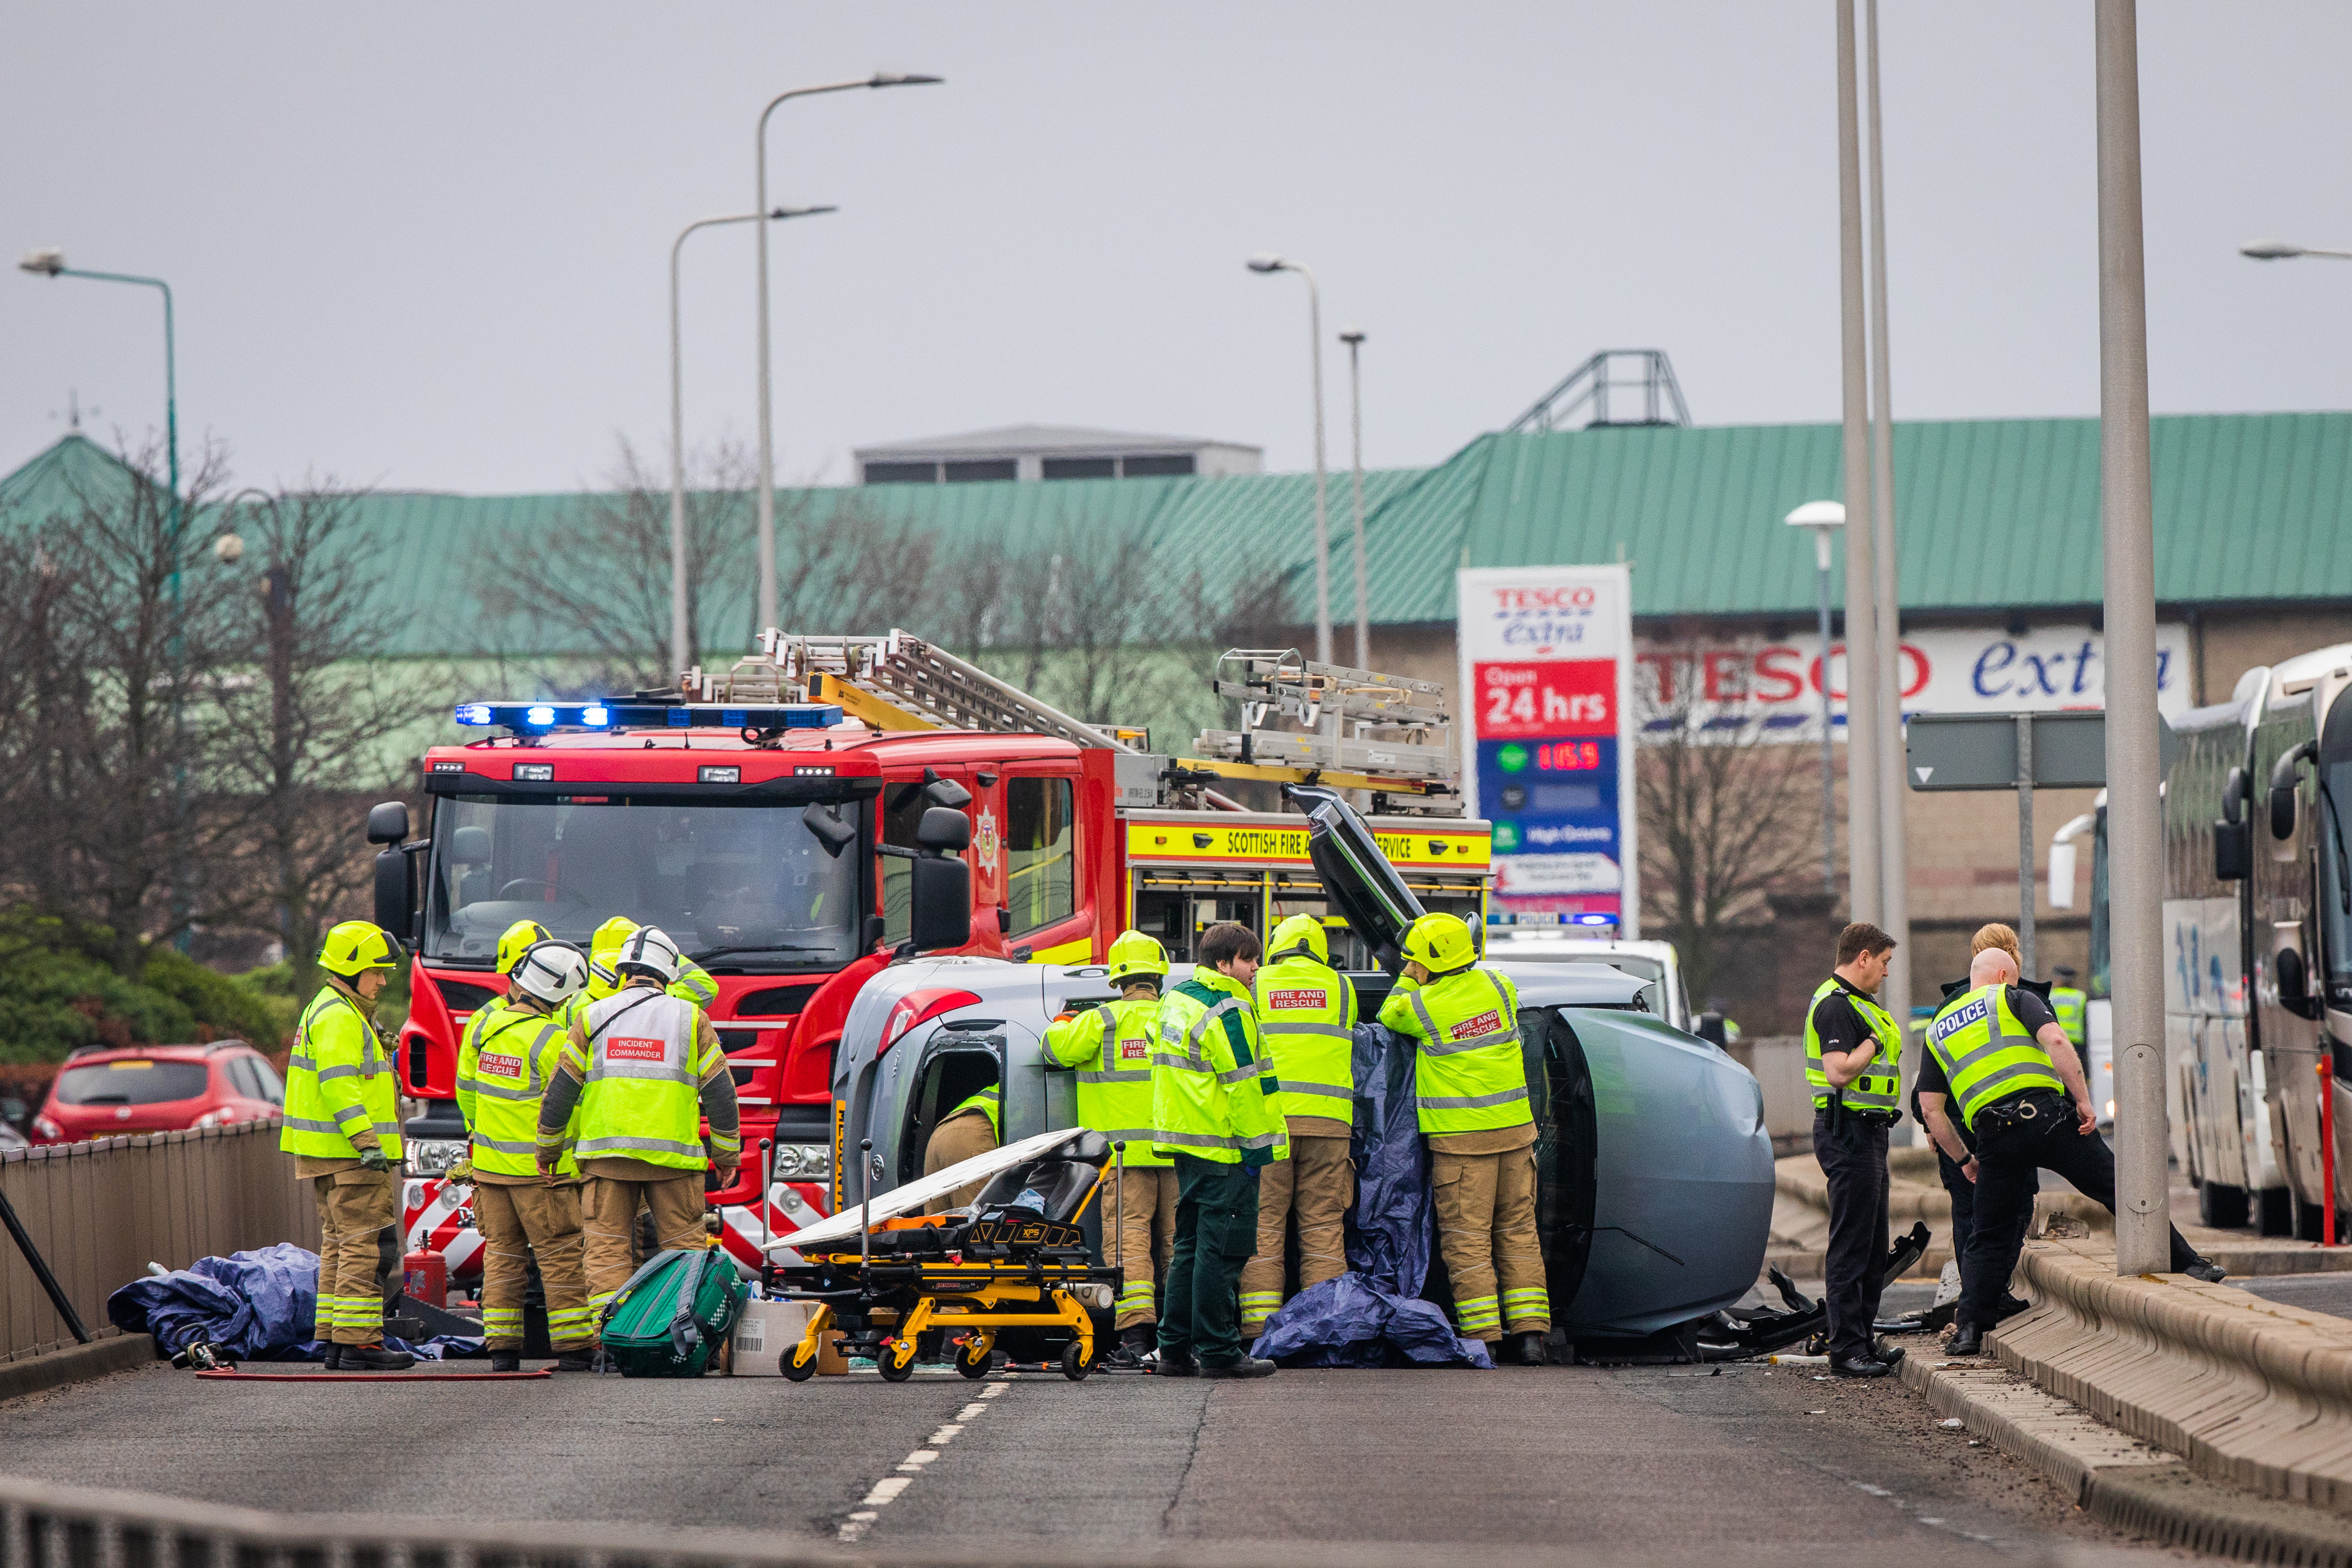 The car was left badly damaged in the crash